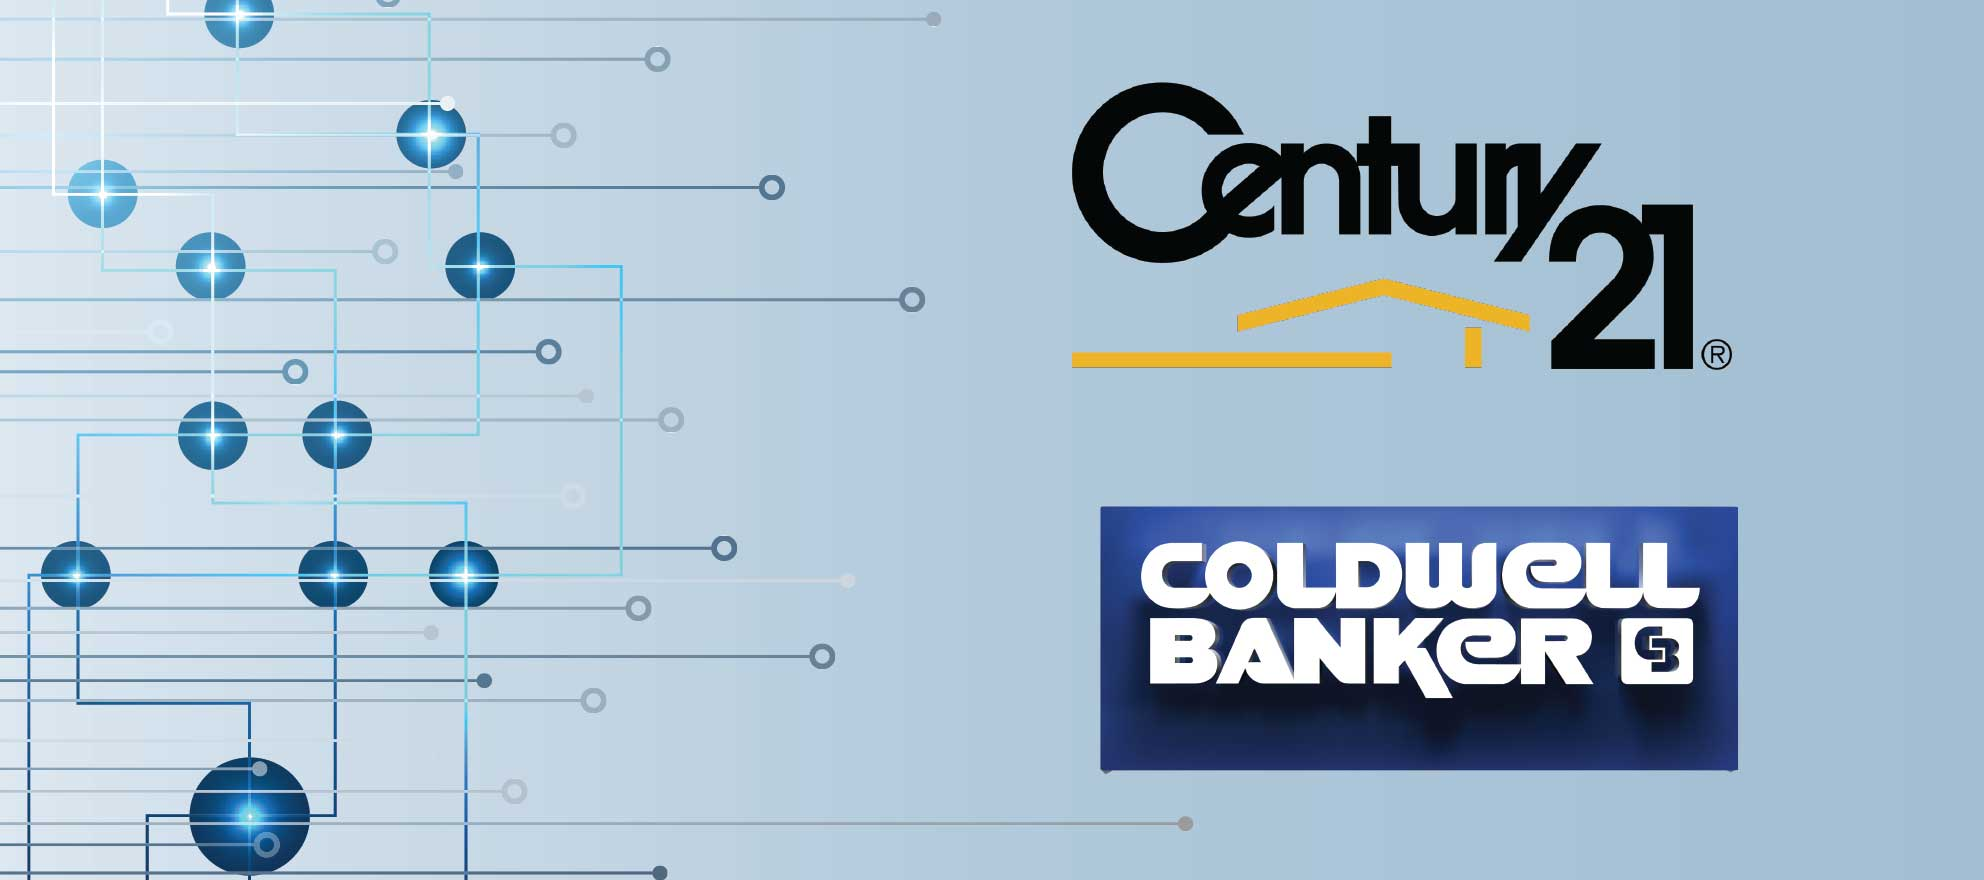 Coldwell Banker, Century 21 re-up with ListHub's Real Estate Network